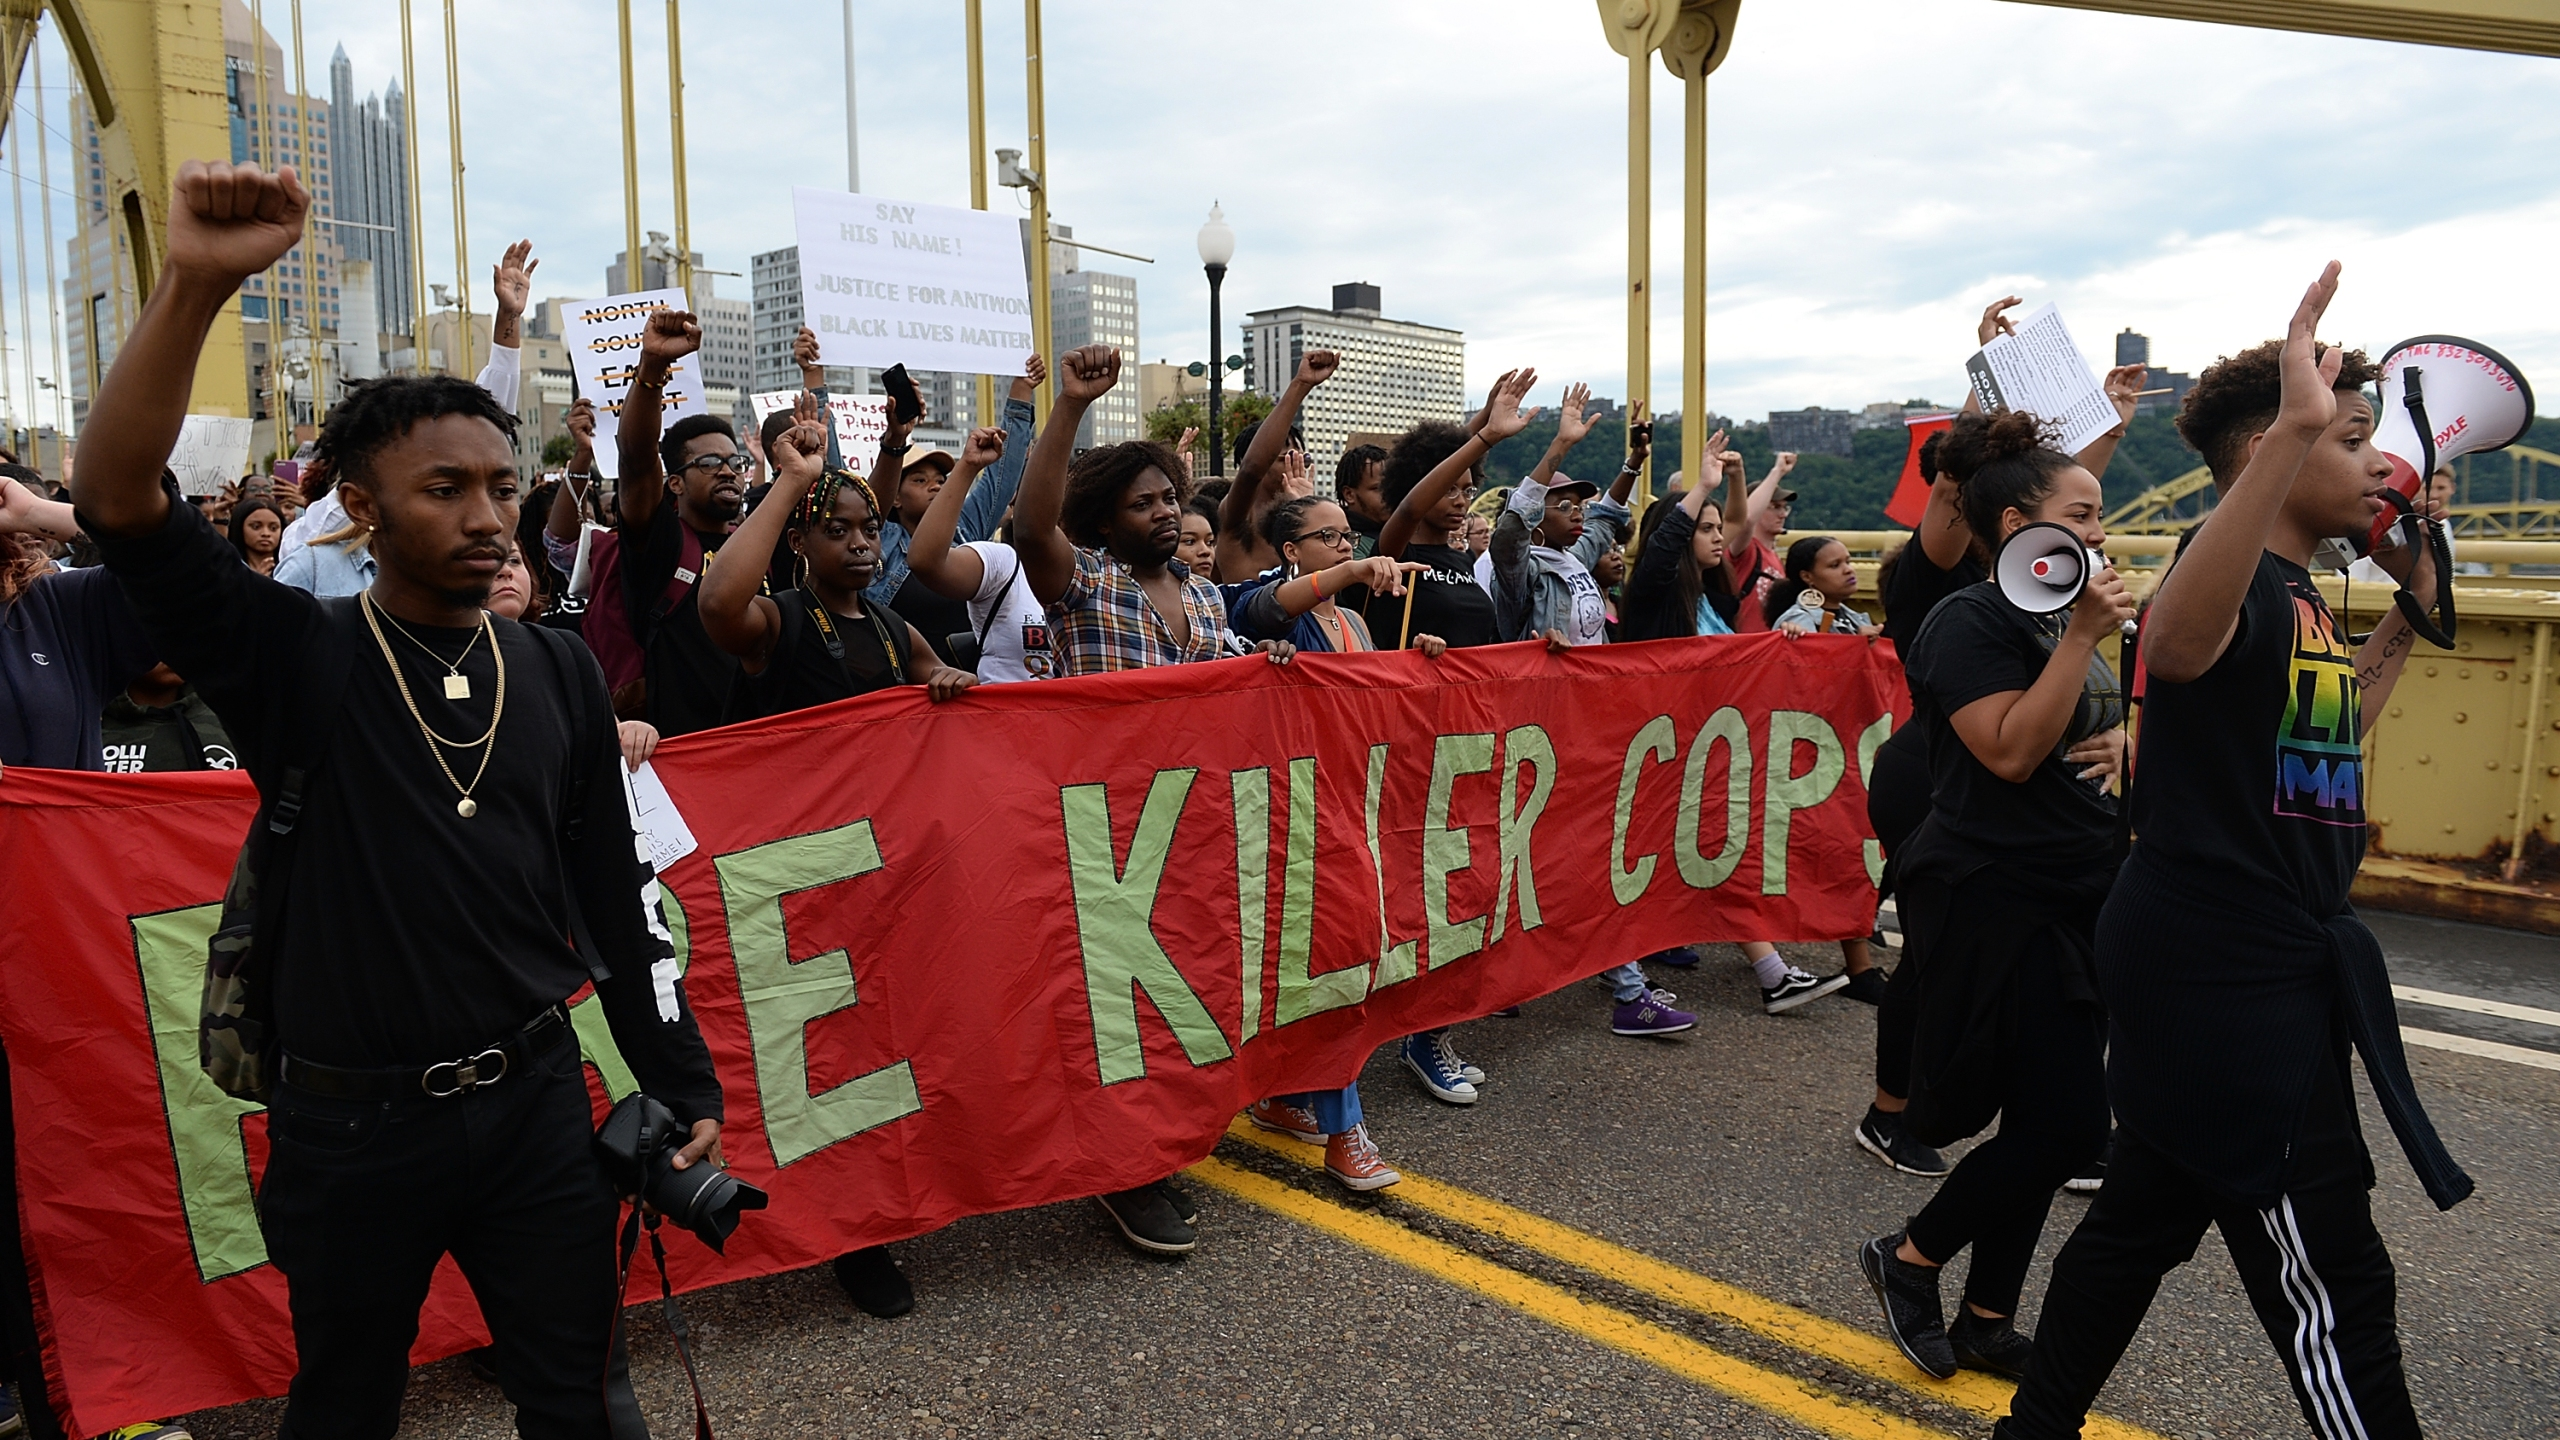 People march over the Roberto Clemente Bridge in Pittsburgh on June 22, 2018, in protest over the fatal police shooting of Antwon Rose. (Credit: Justin Berl / Getty Images)